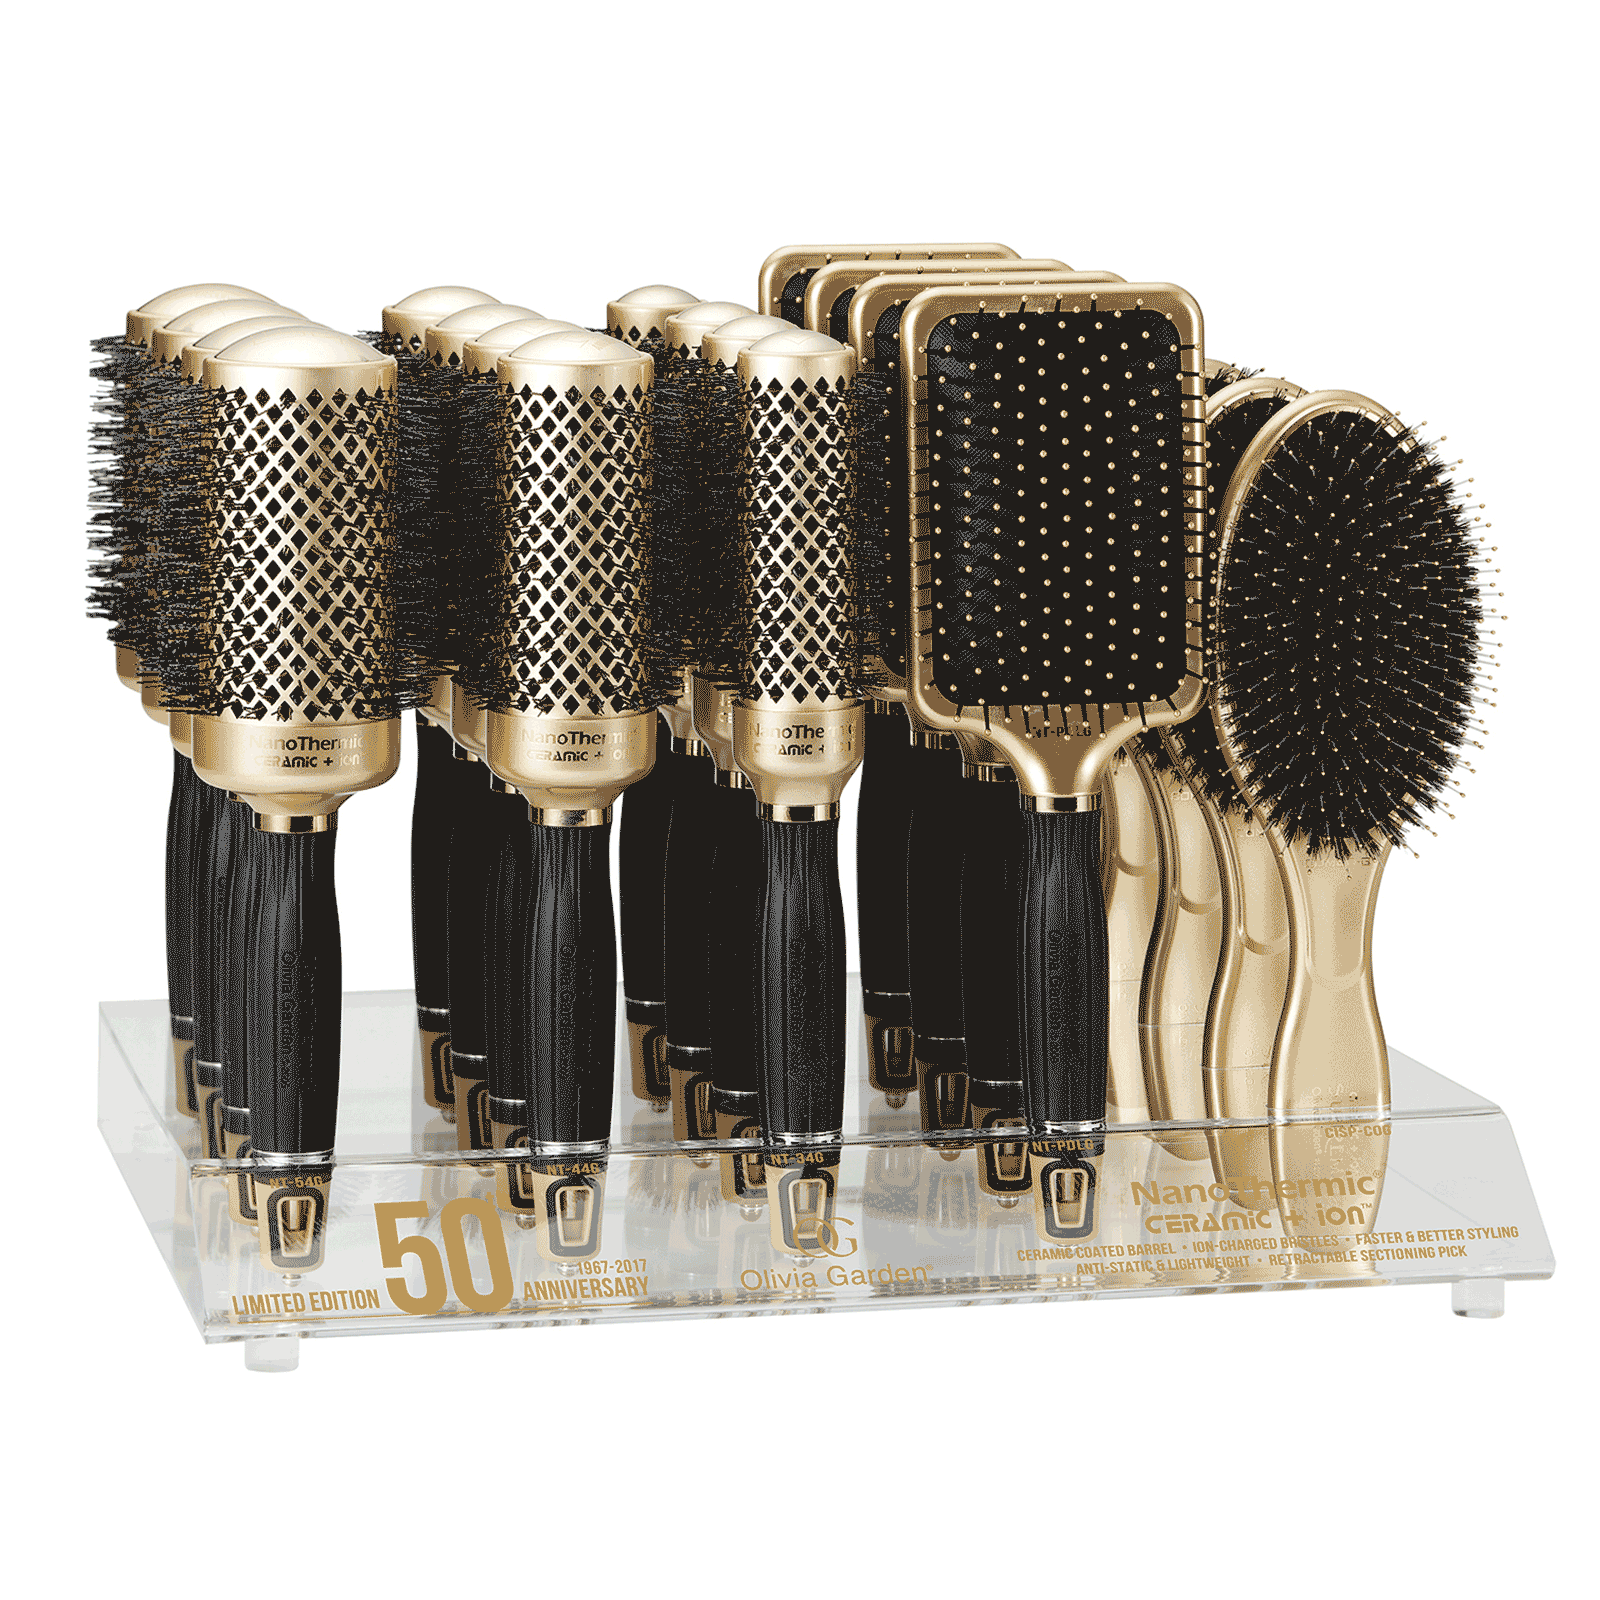 50th anniversary brush collection 15 count display - Olivia Garden